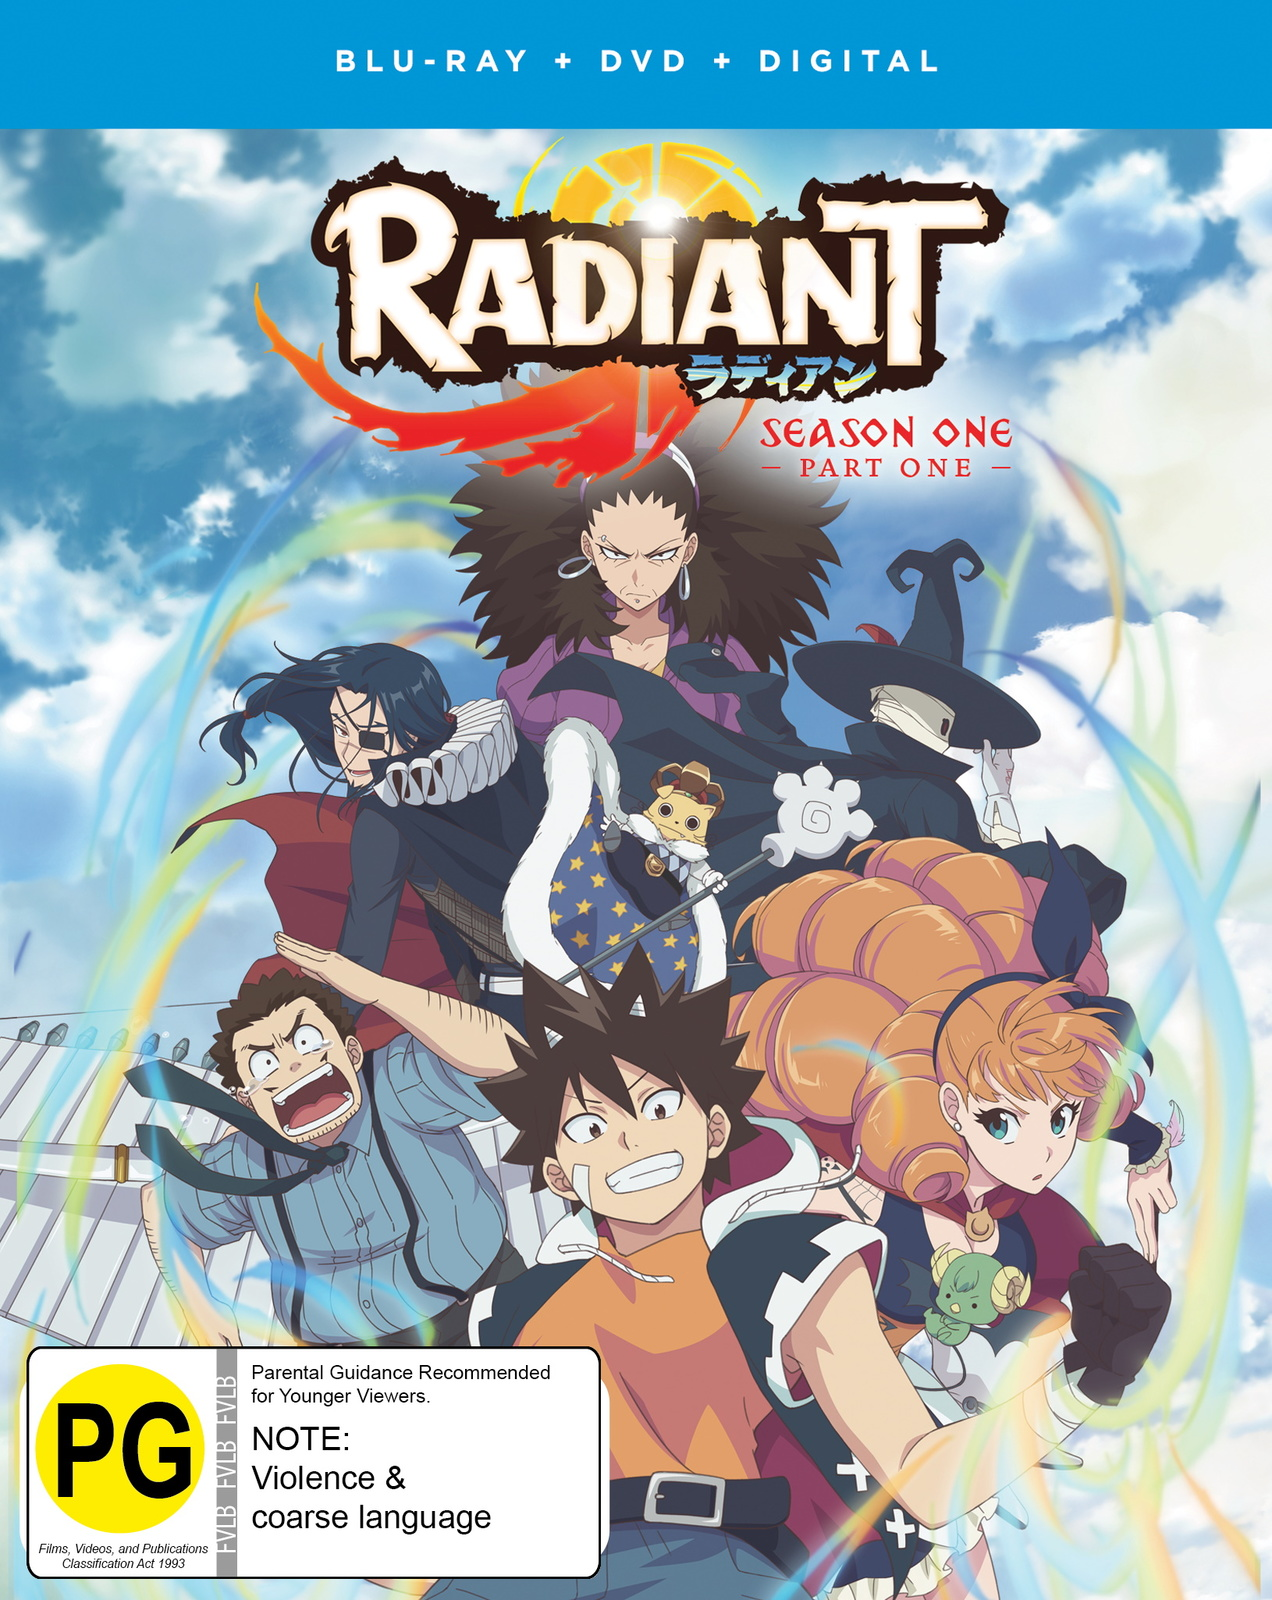 Radiant - Part 1 (DVD/Blu-ray Combo) on Blu-ray image